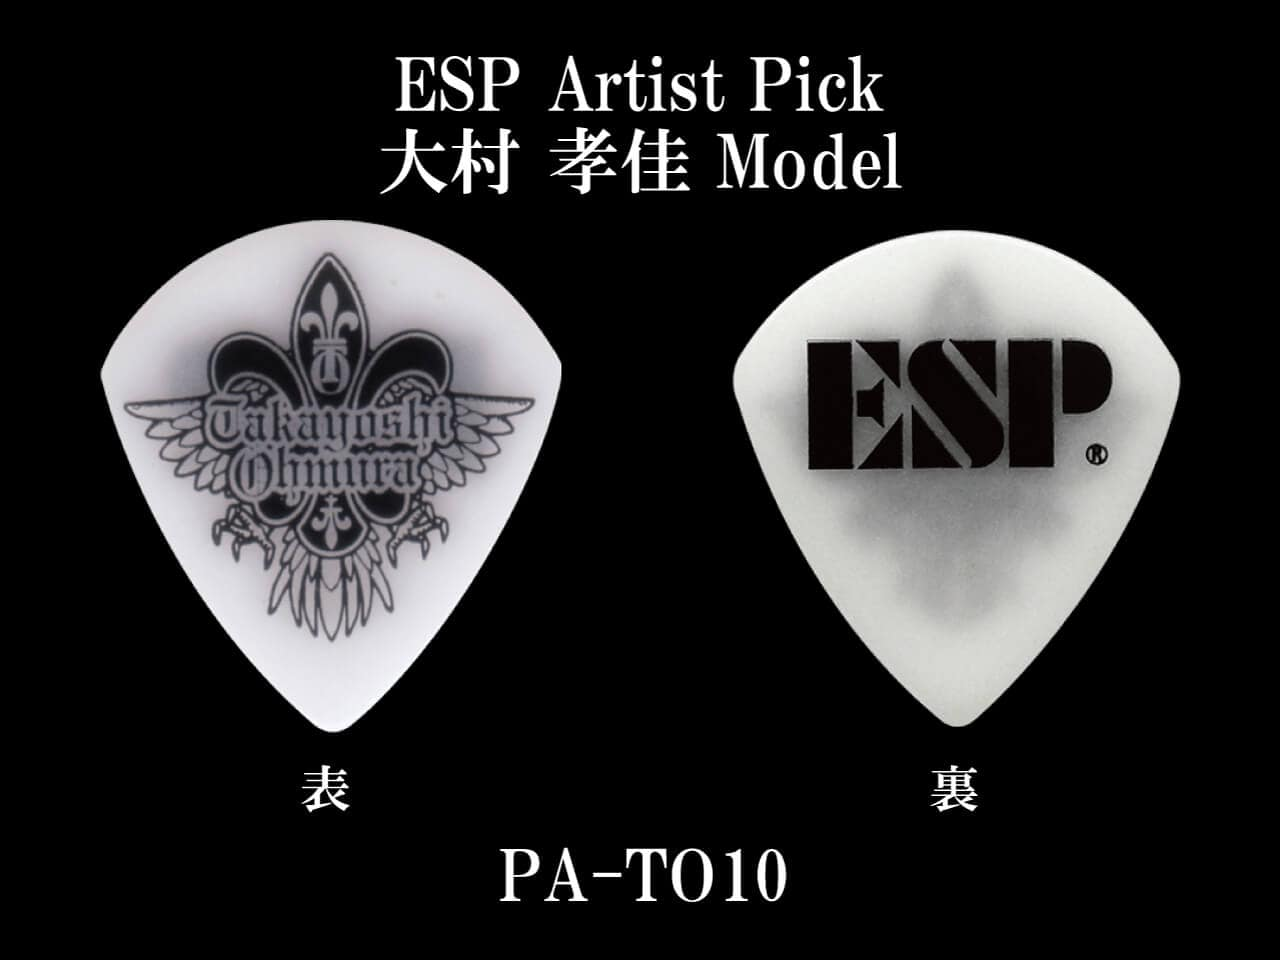 ESP(イーエスピー) Artist Pick Series PA-TO10 (大村 孝佳 Model)